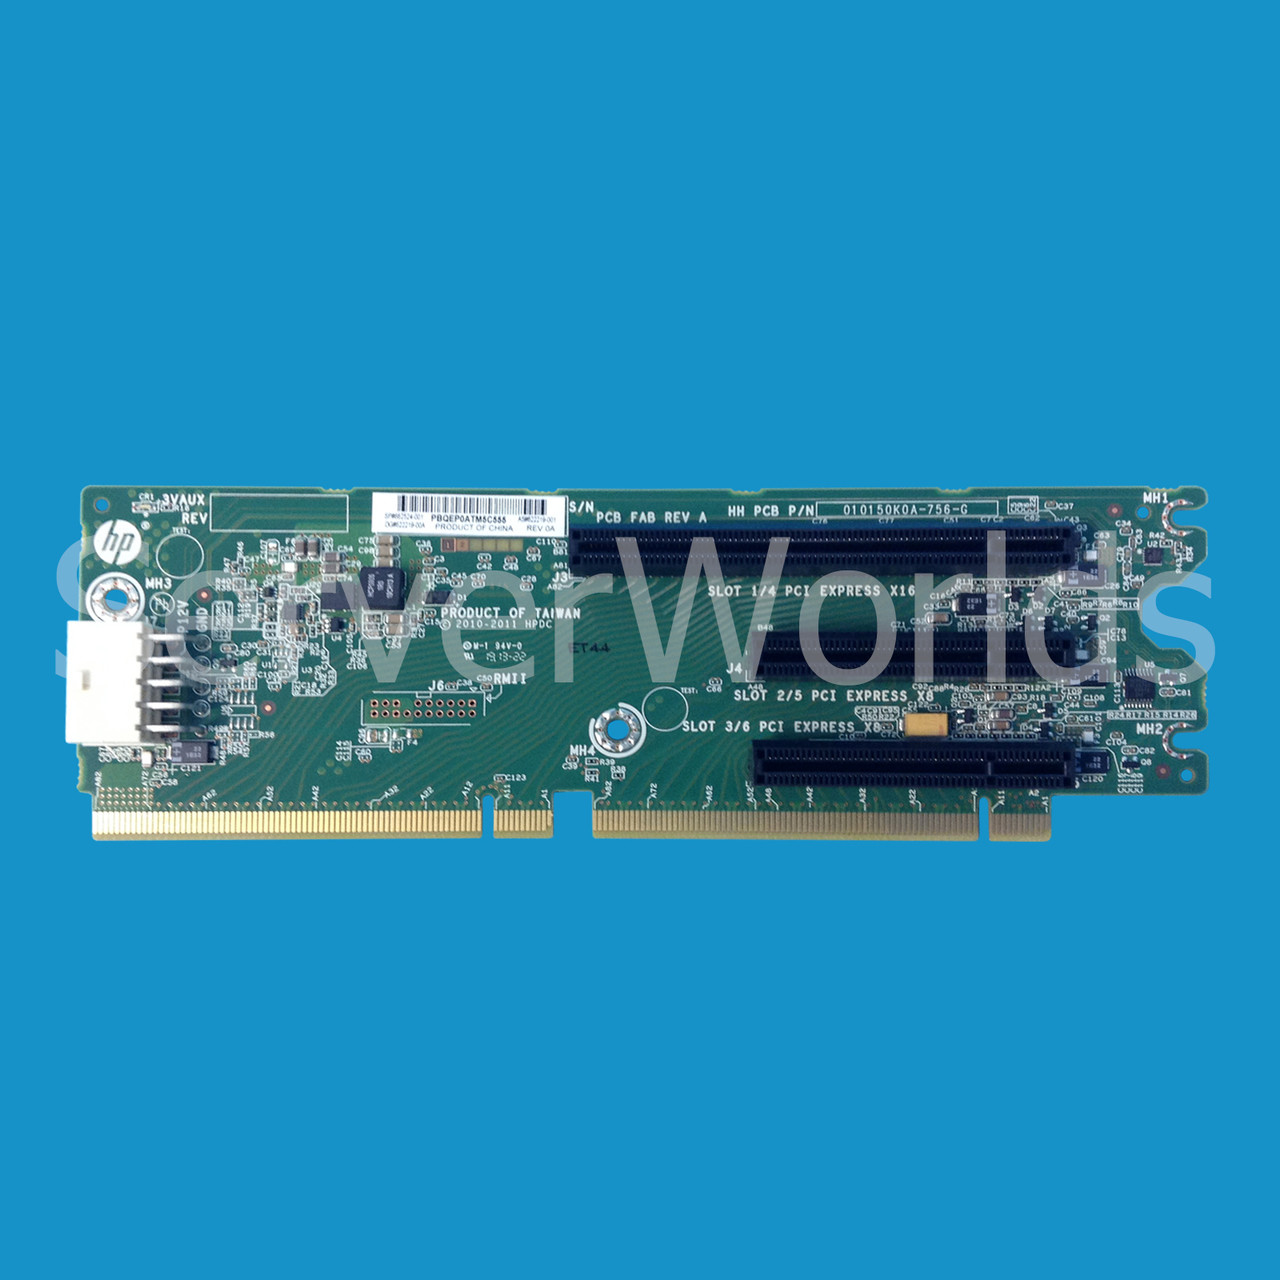 Hp 662524 001 Dl380p Gen8 3 Slot Pcie Riser Card 622219 Notebook Ide Interface Cdrom To Usb External Drive Circuit Board Red Image 1